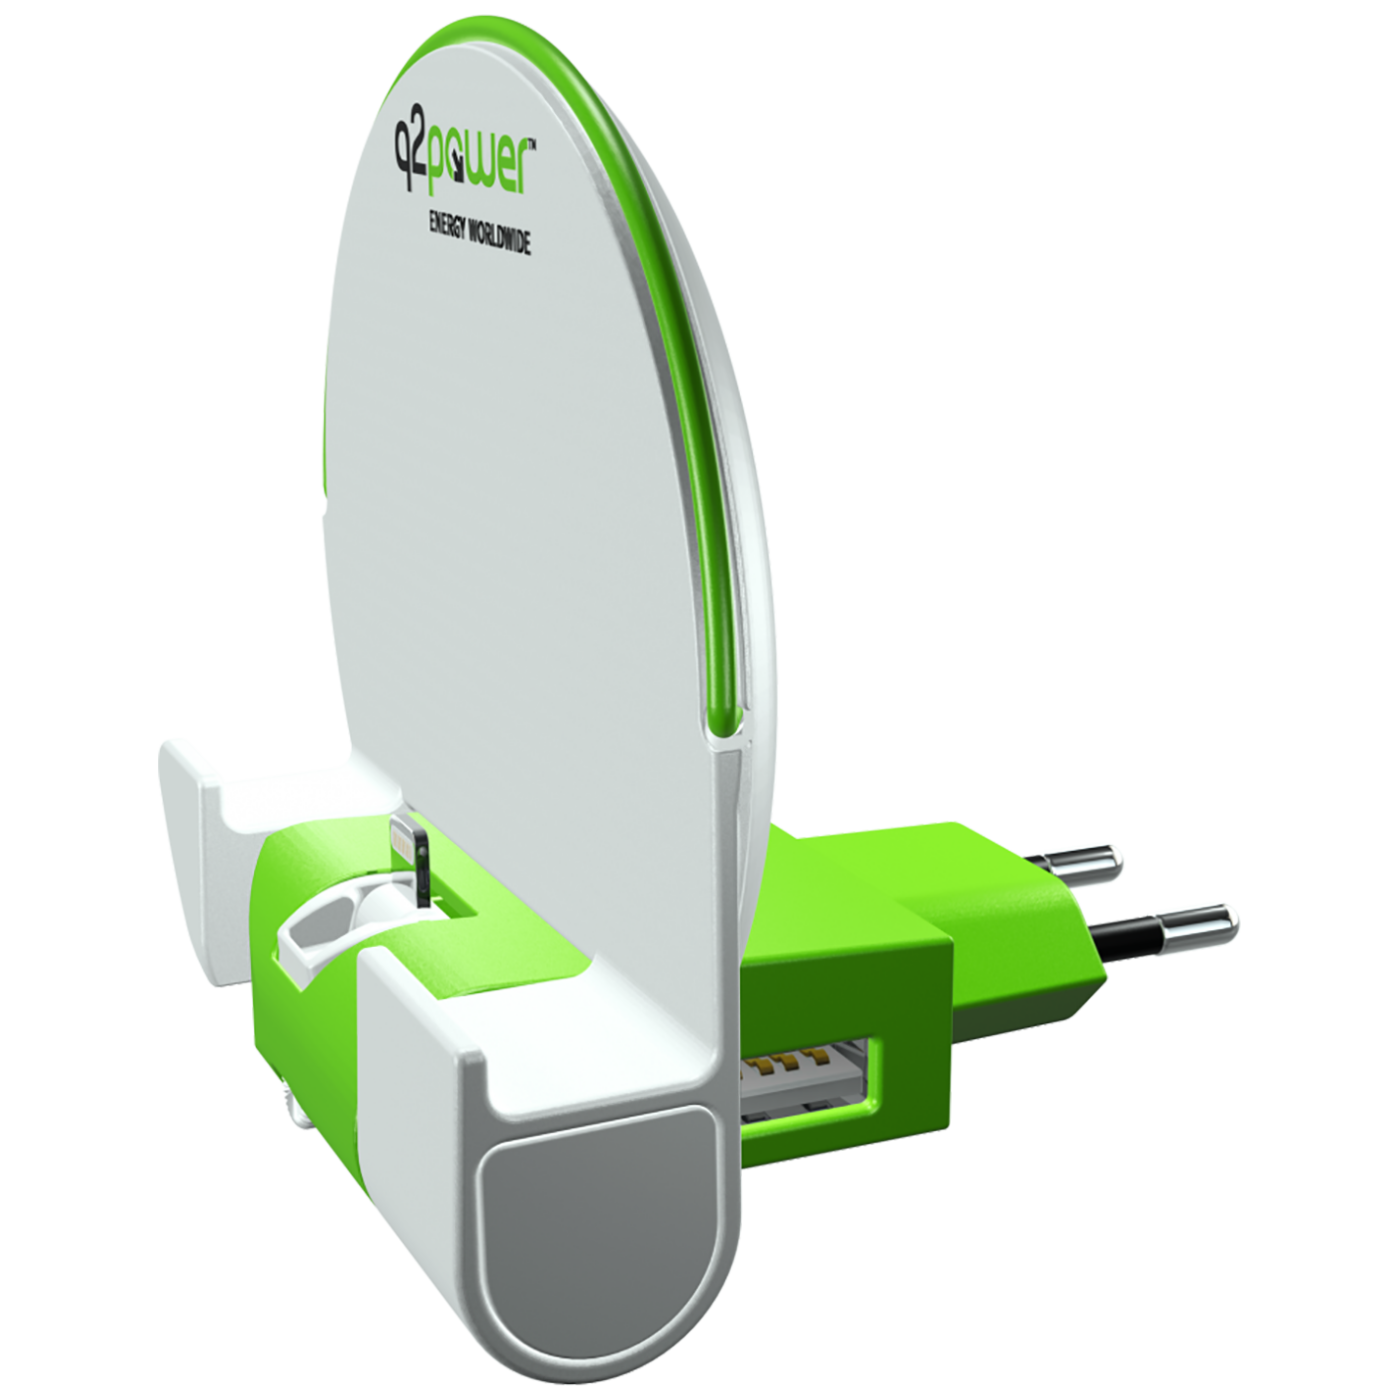 q2power - DOCK&CHARGE L EURO